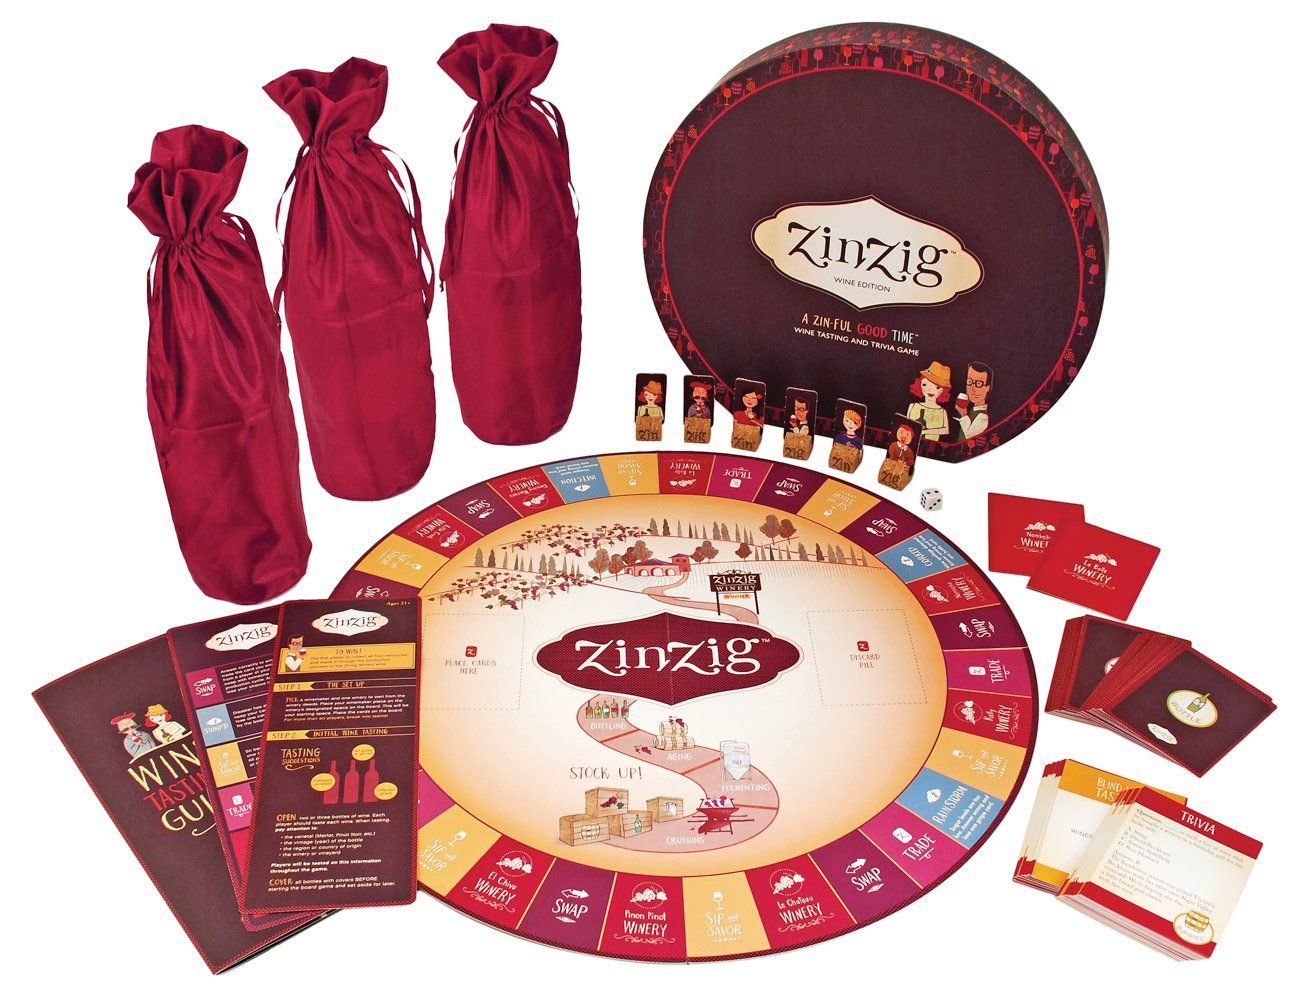 Zinzig Wine Tasting And Trivia Game For Wine Parties Dinners Tastings Wine Games Wine Tasting Wine Lovers